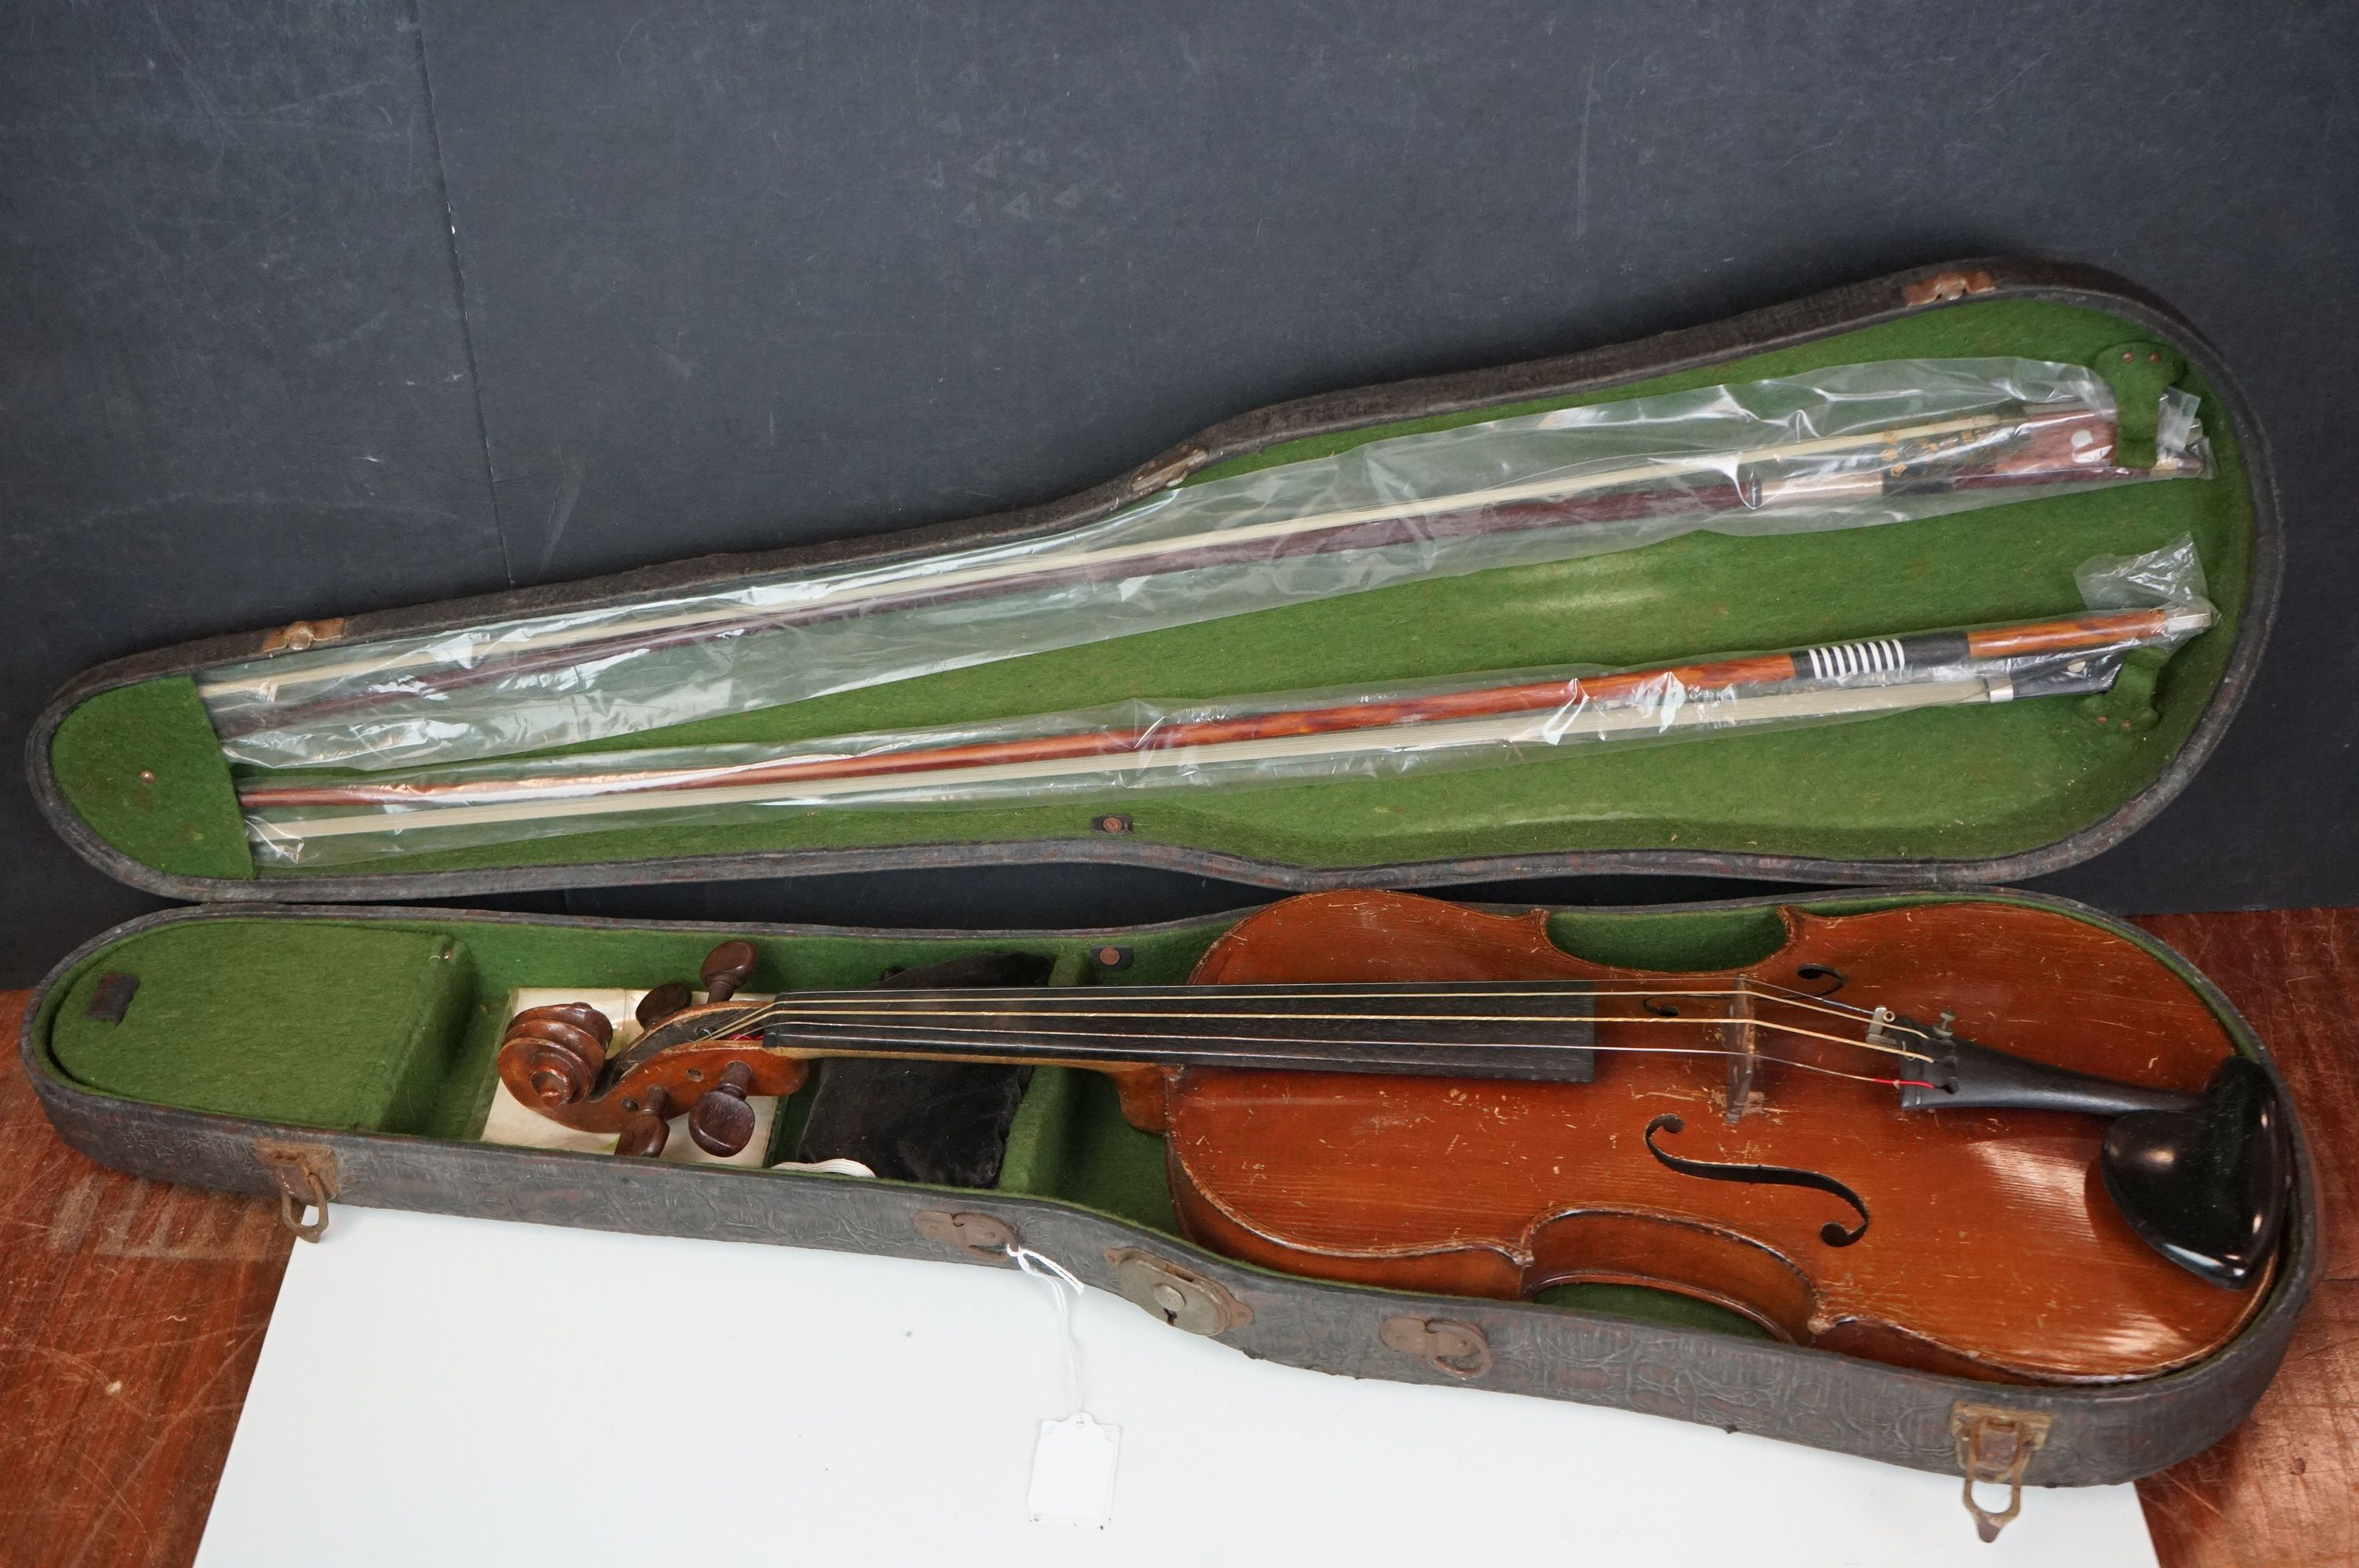 Violin with Two Bows in a Vintage Snakeskin effect case